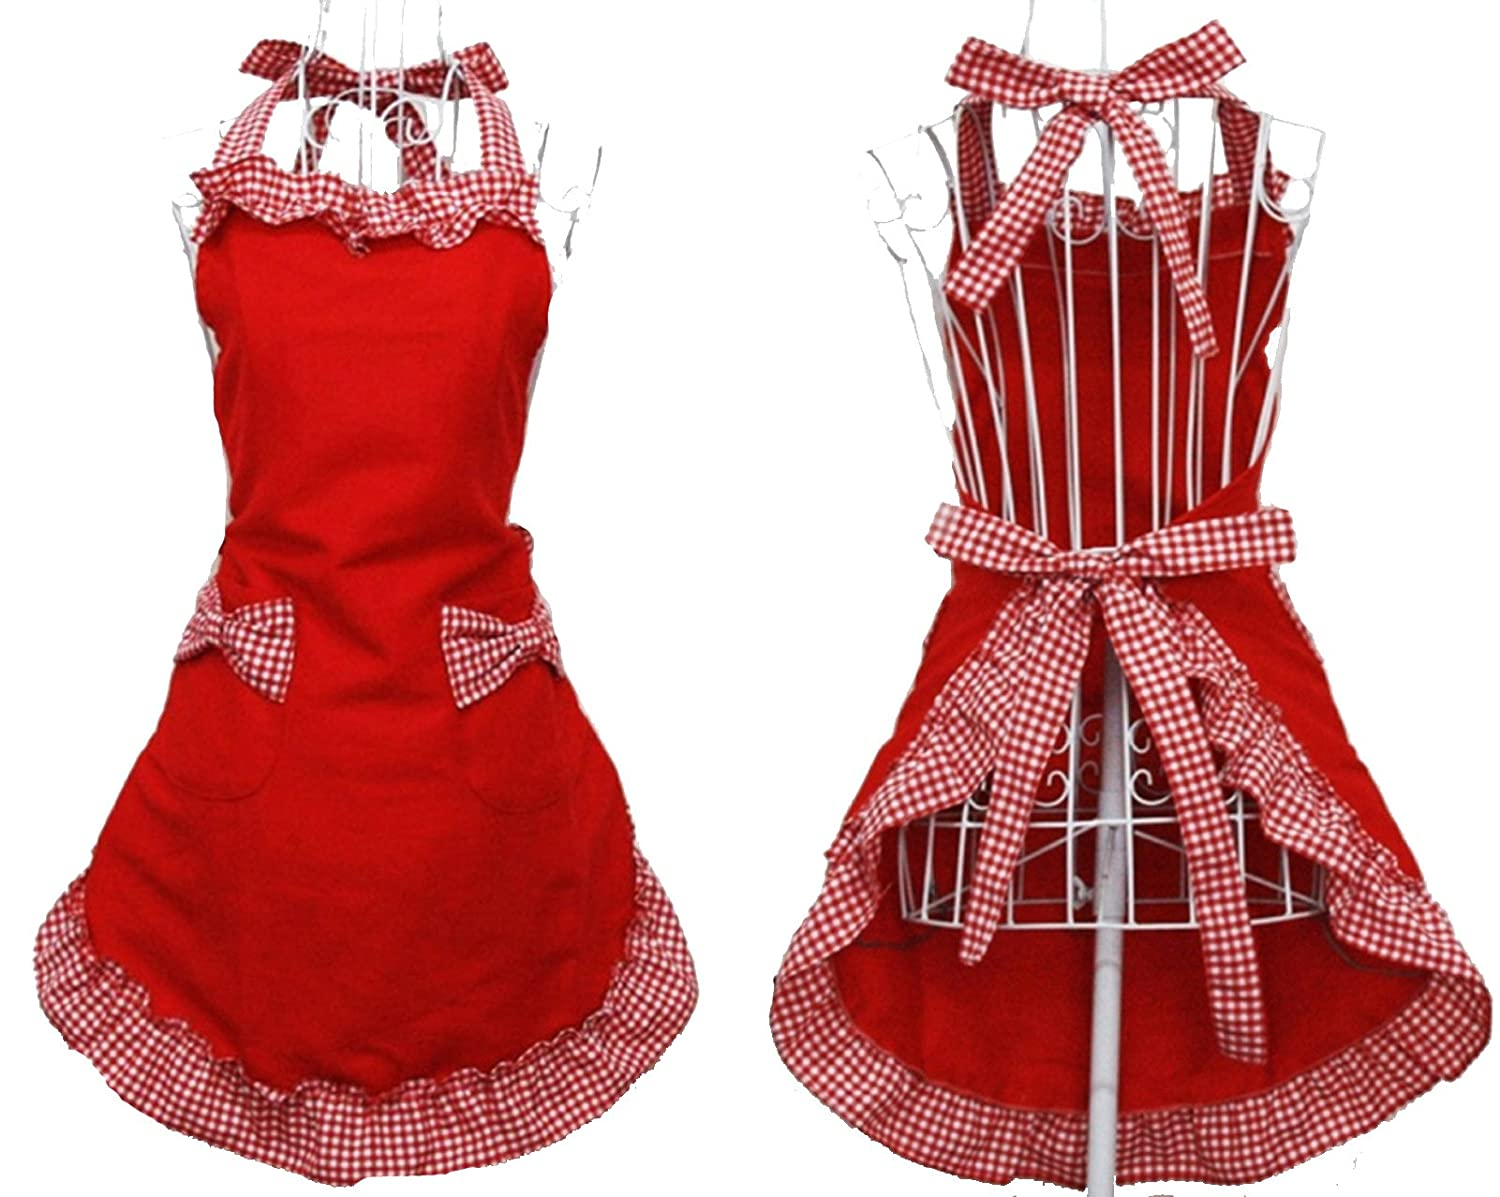 Hyzrz Cute Fashion Cotton Flirty Red Aprons for Women Girls Vintage Cooking Retro Apron with Pockets for COMINHKPR56110